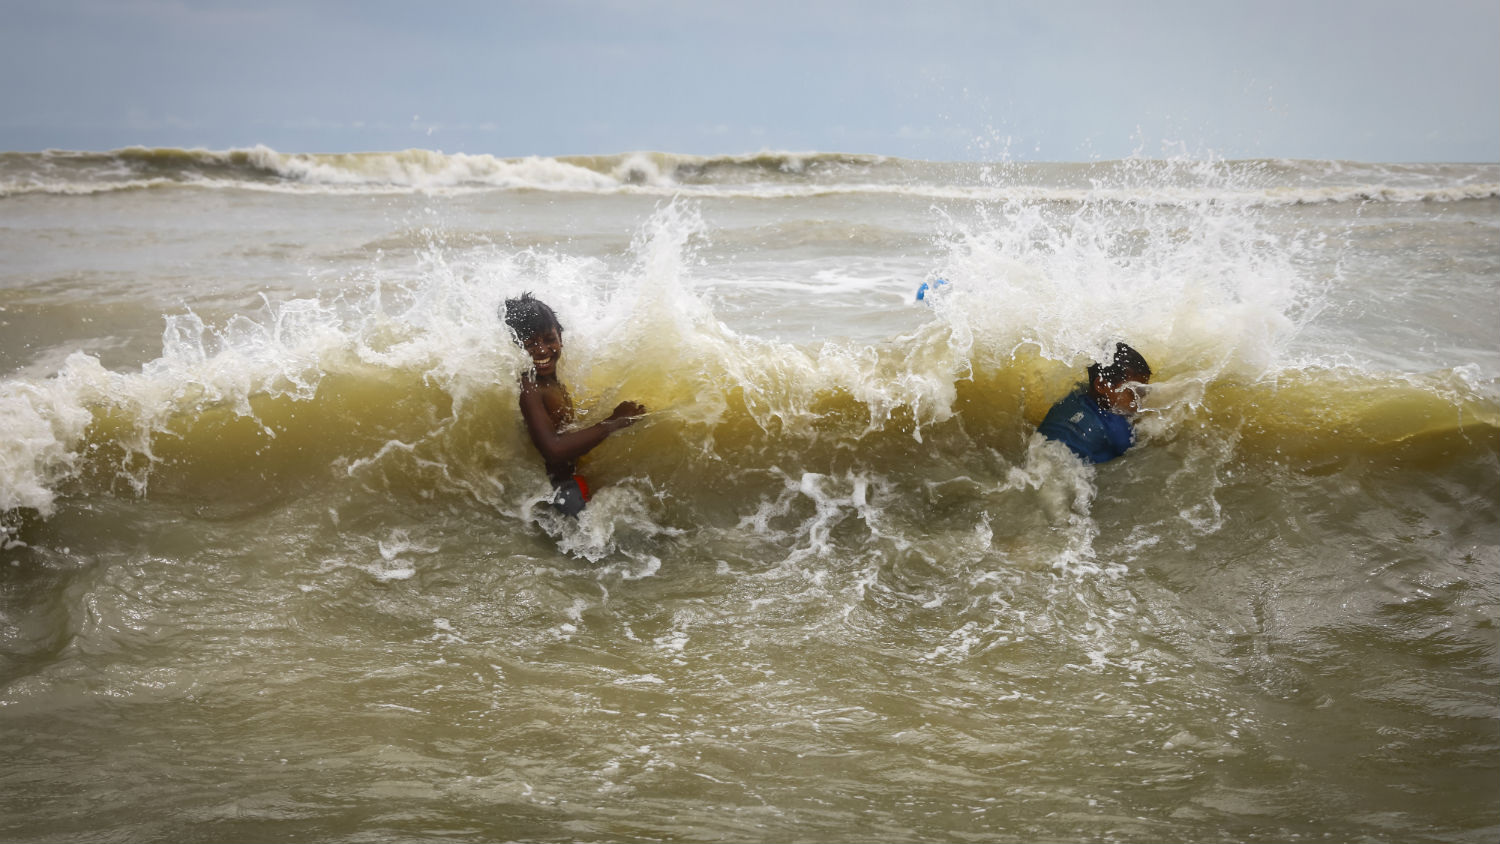 Local children swim in Cox's Bazar, Bangladesh